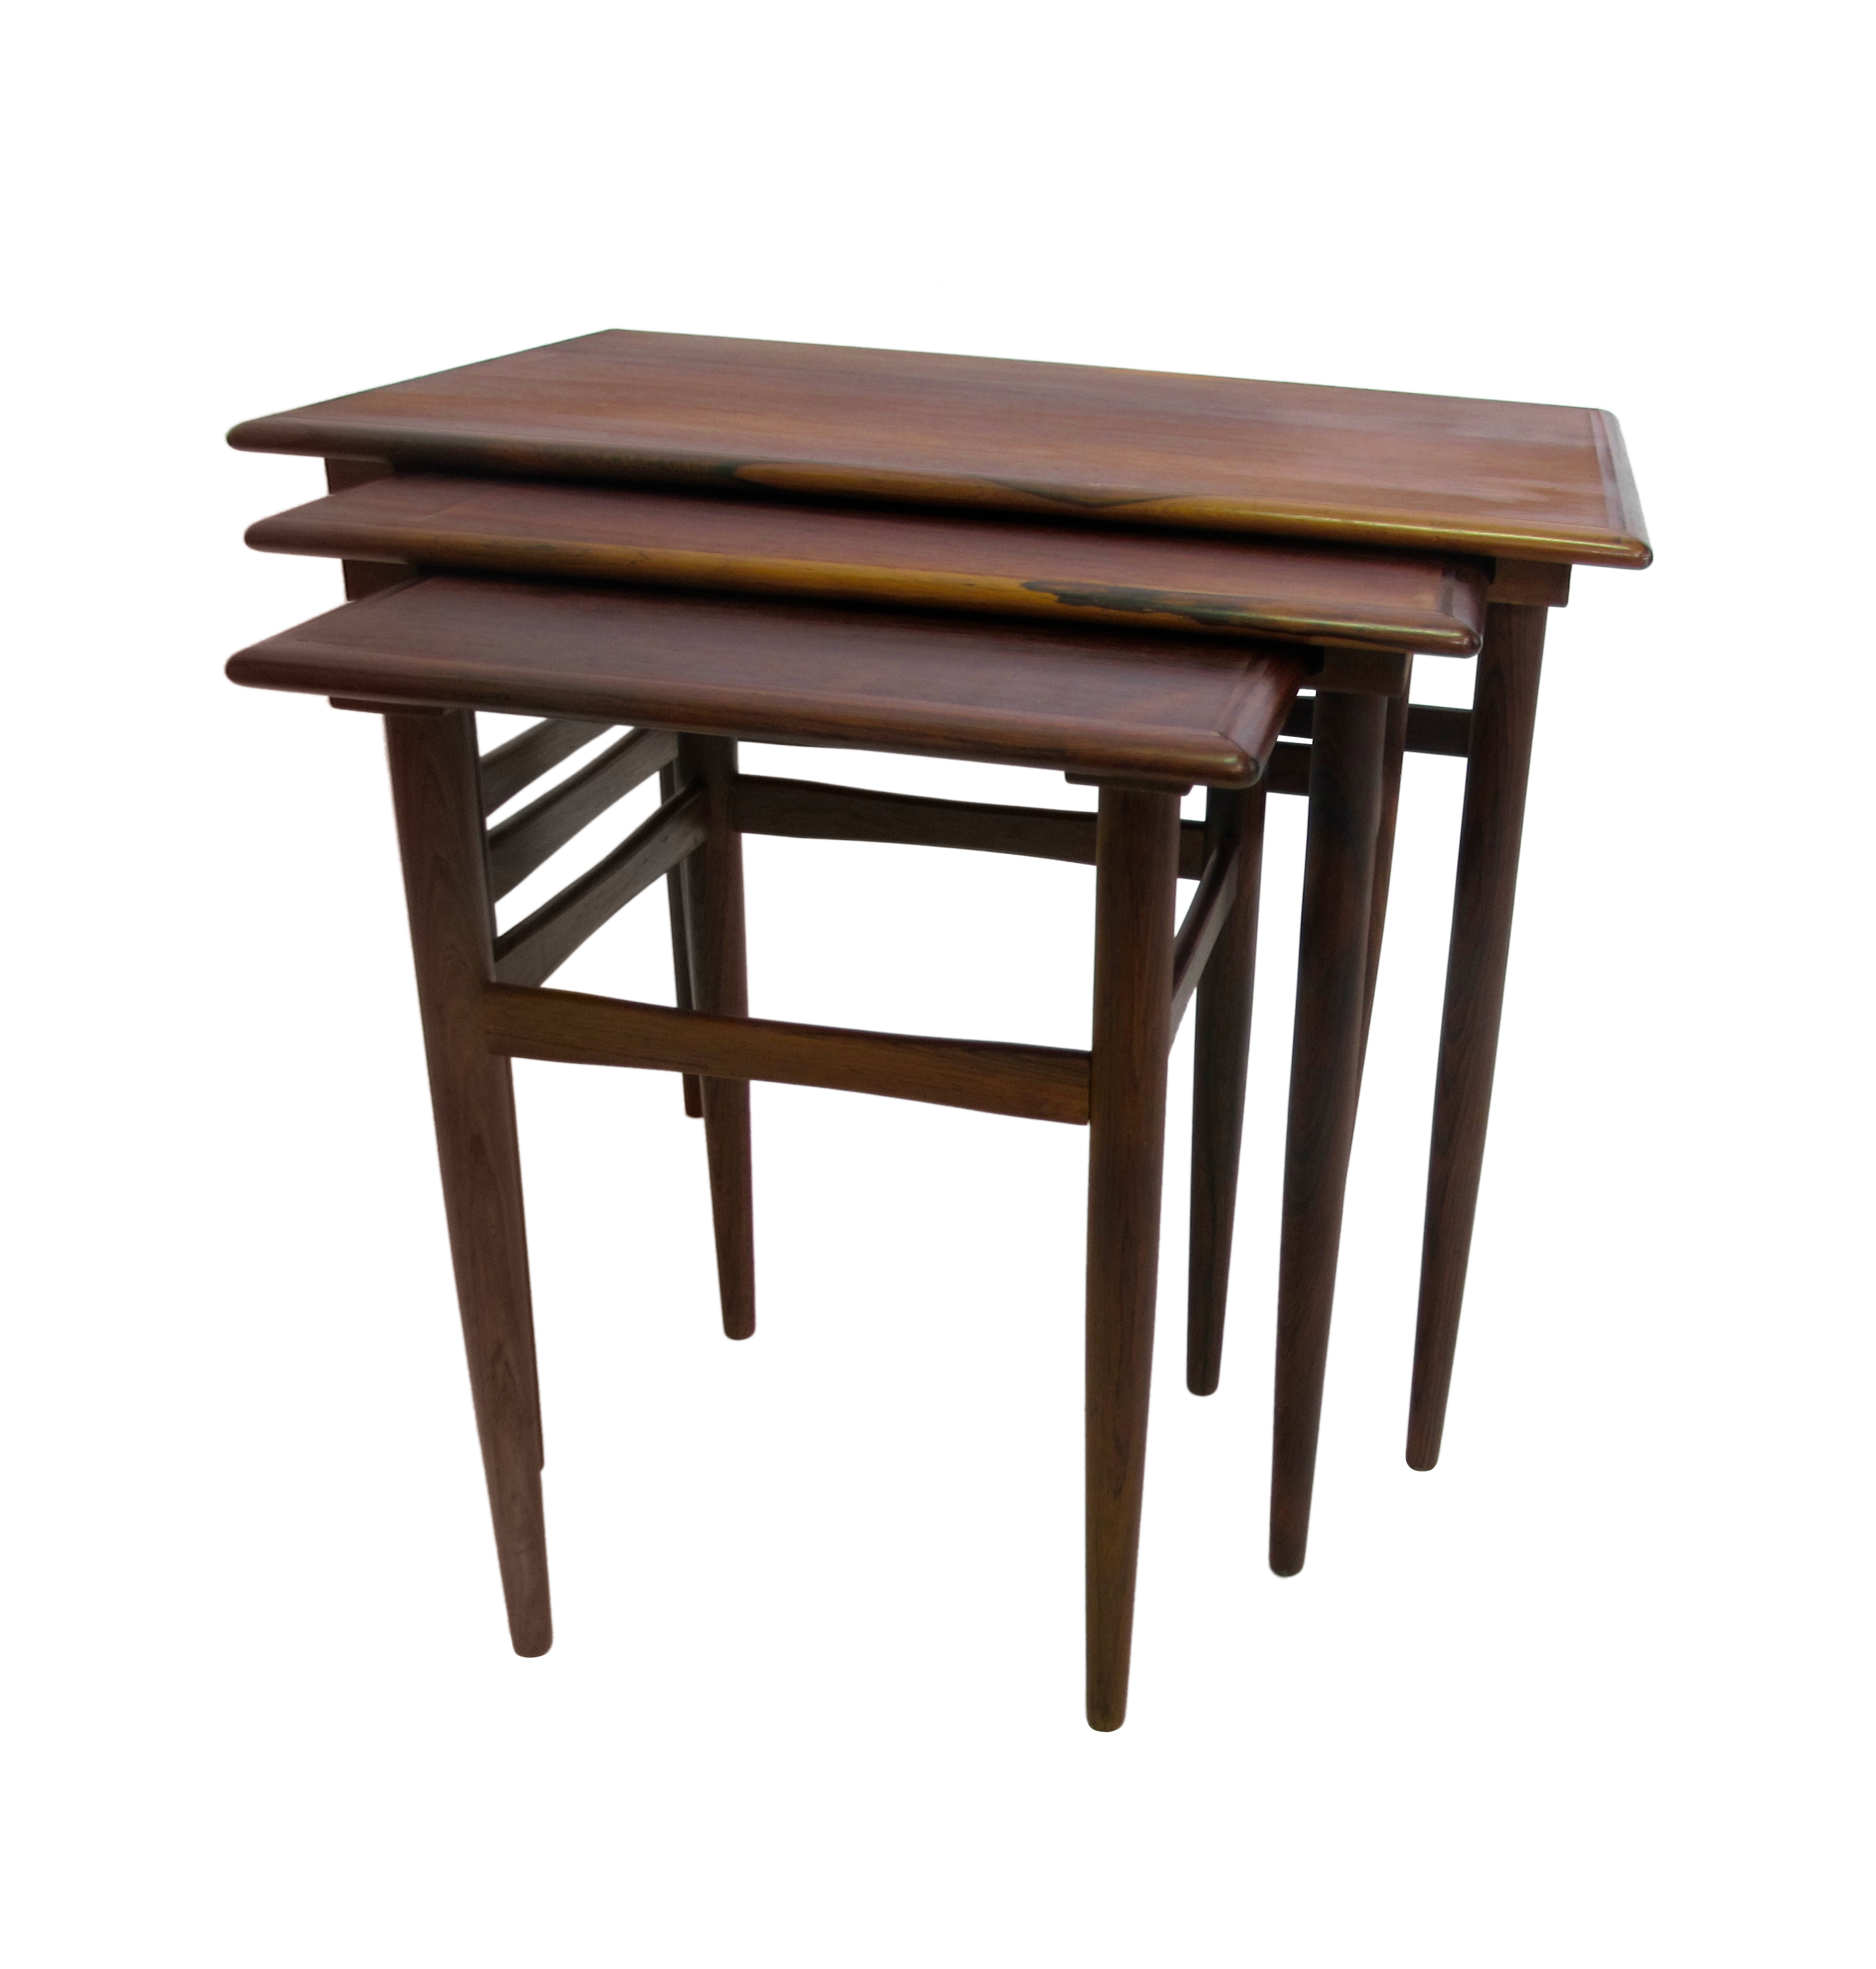 Danish Mid Century Modern Rosewood Nesting Tables Chairish. Full resolution  image, nominally Width 2858 Height 3000 pixels, image with #322119.